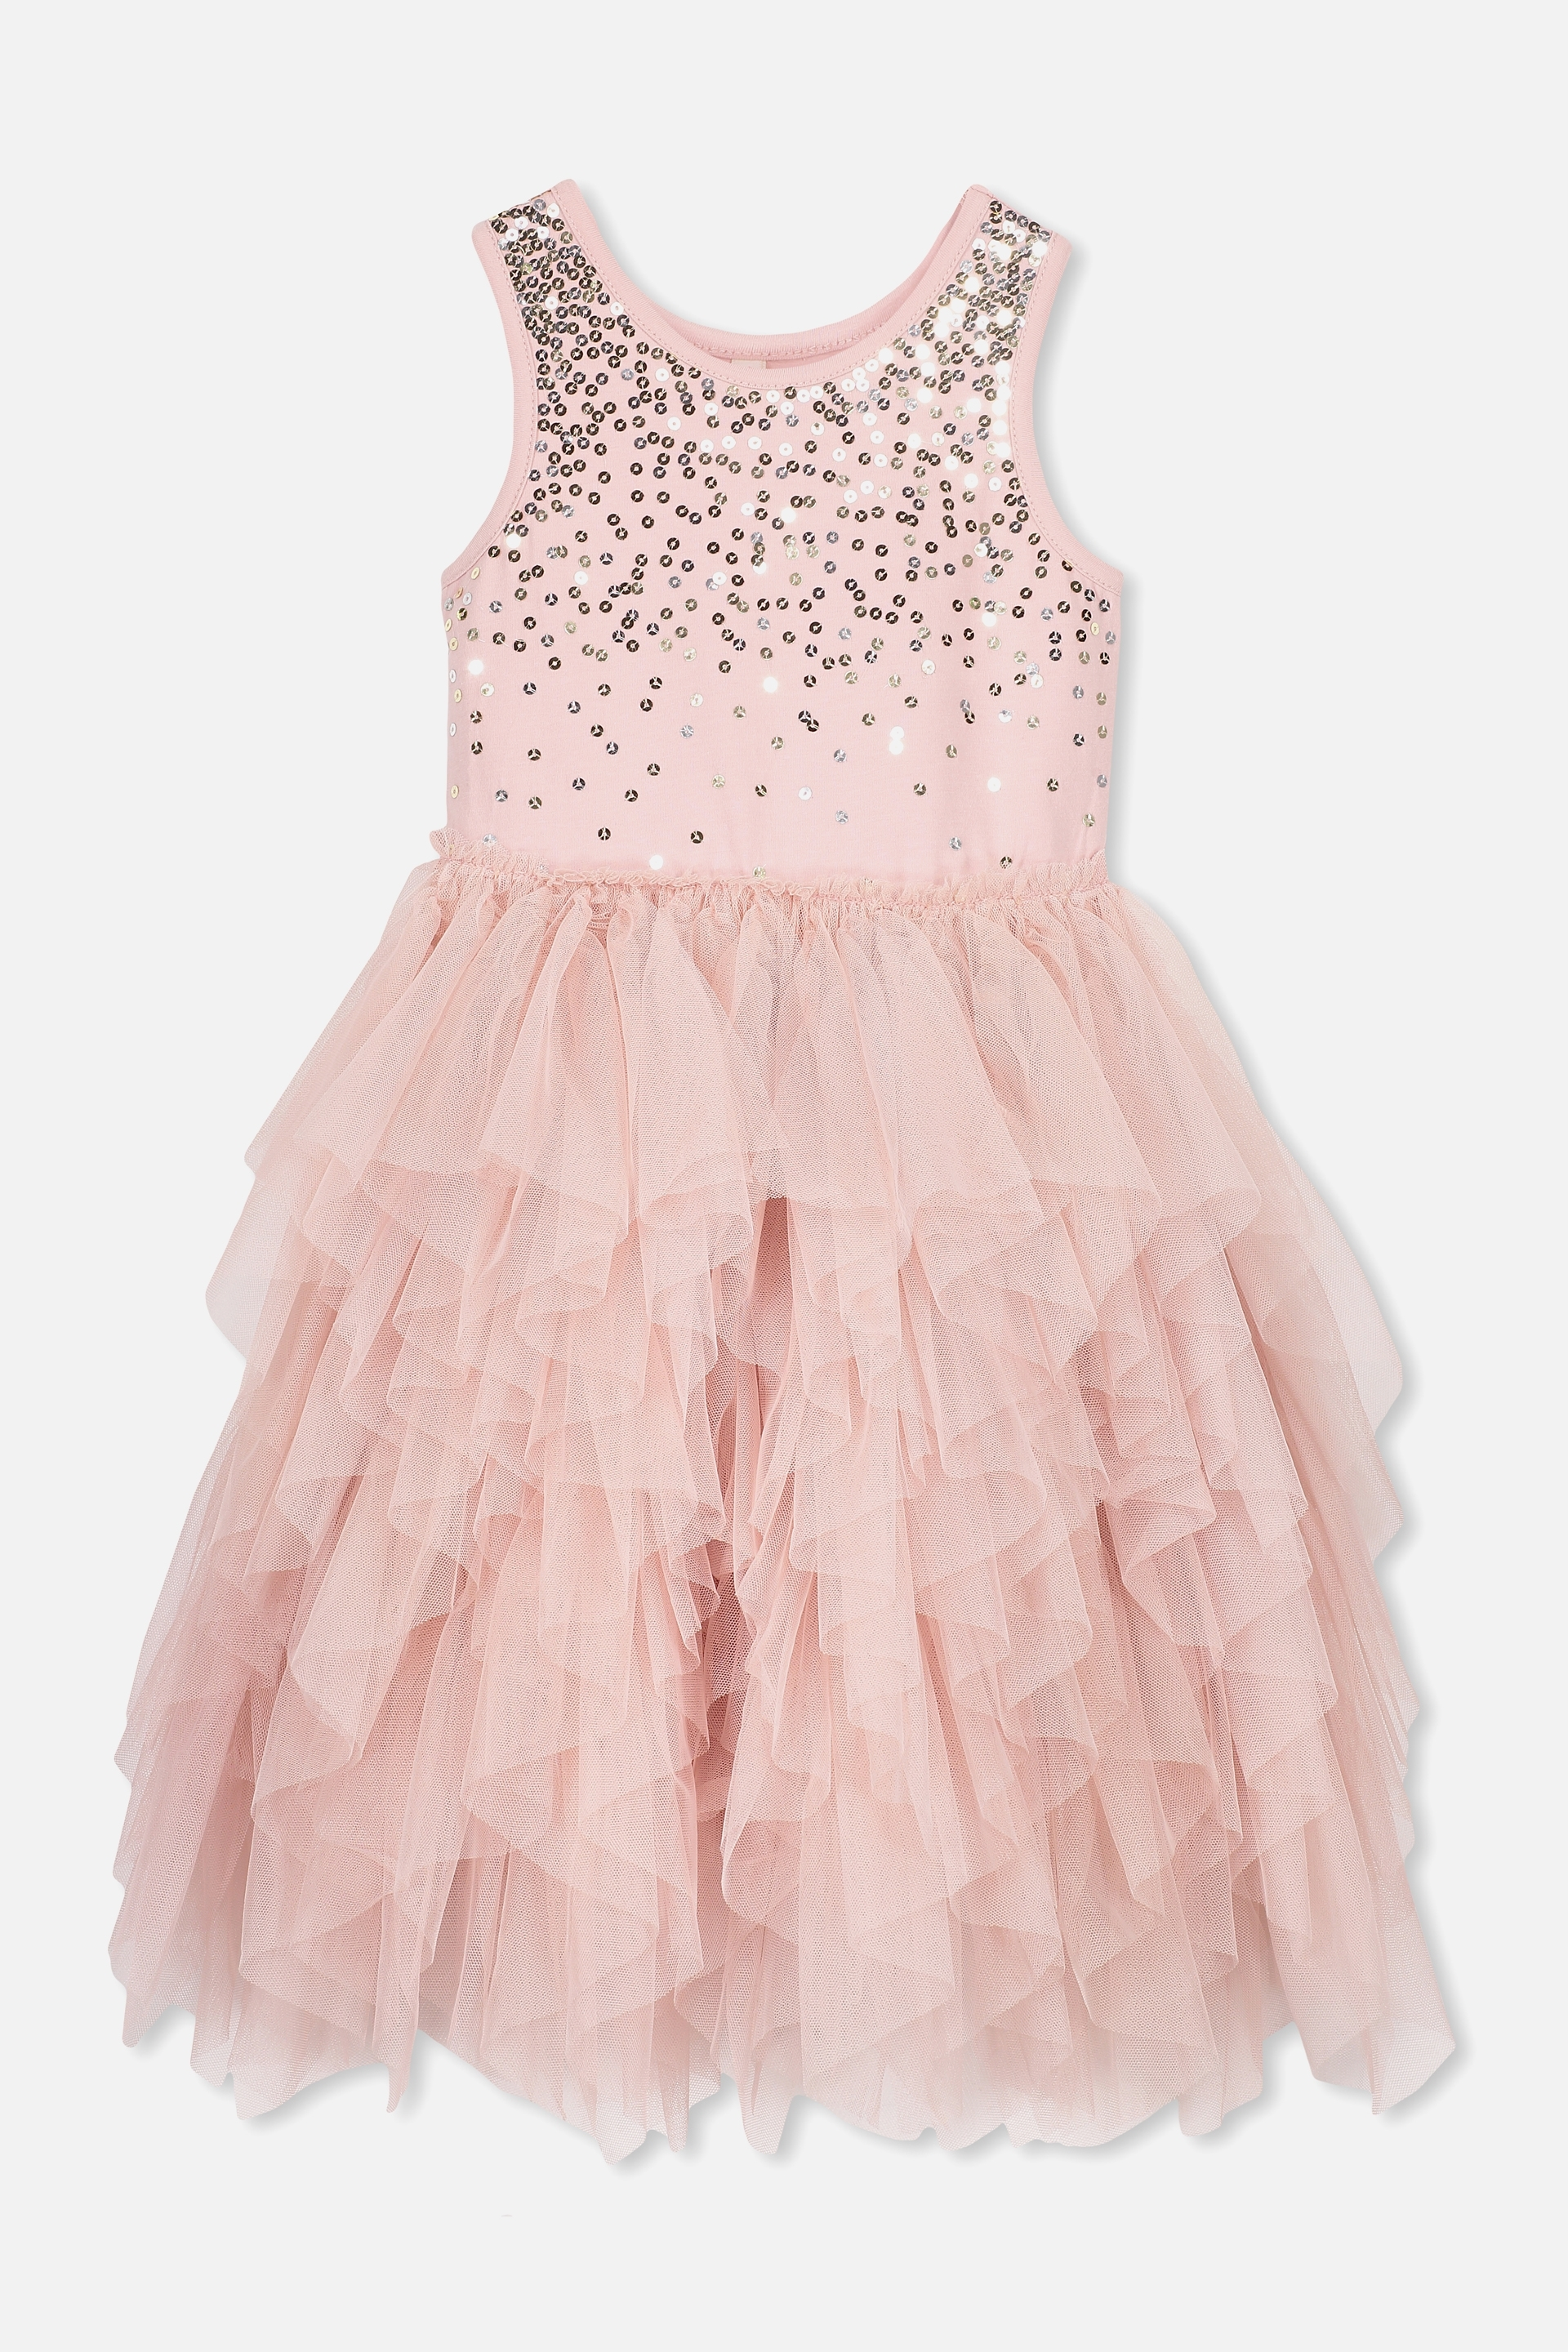 Cotton On Kids  Iris Tulle Dress  Dusty pinkgold  silver